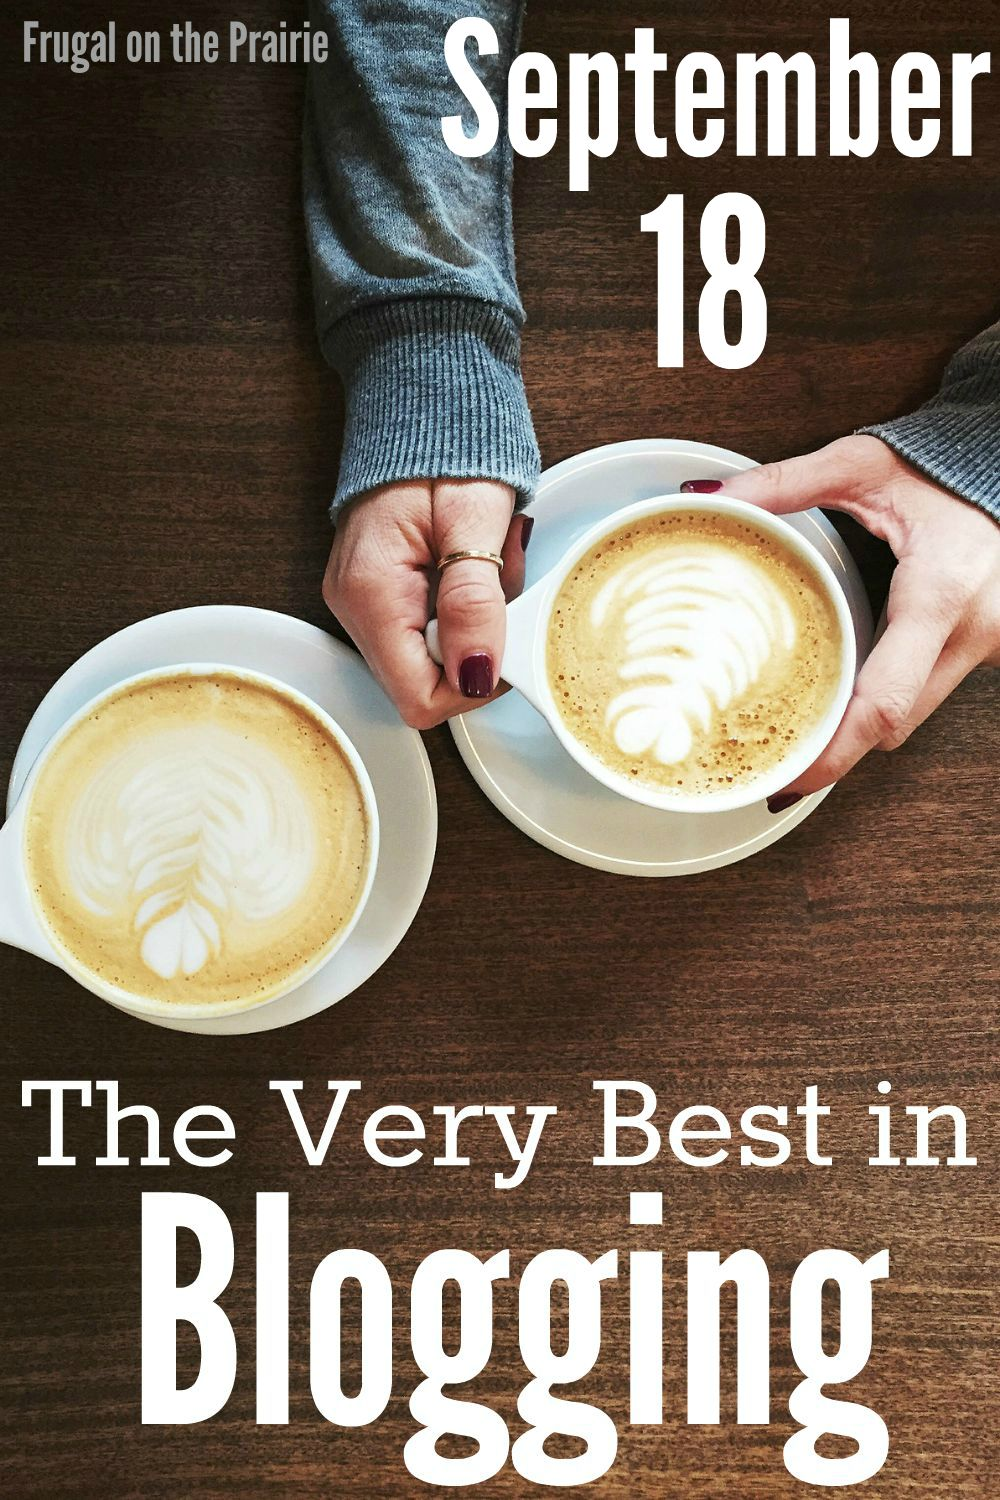 Looking for the best blogging posts? I do a roundup of the most inspiring content from around the web every week.